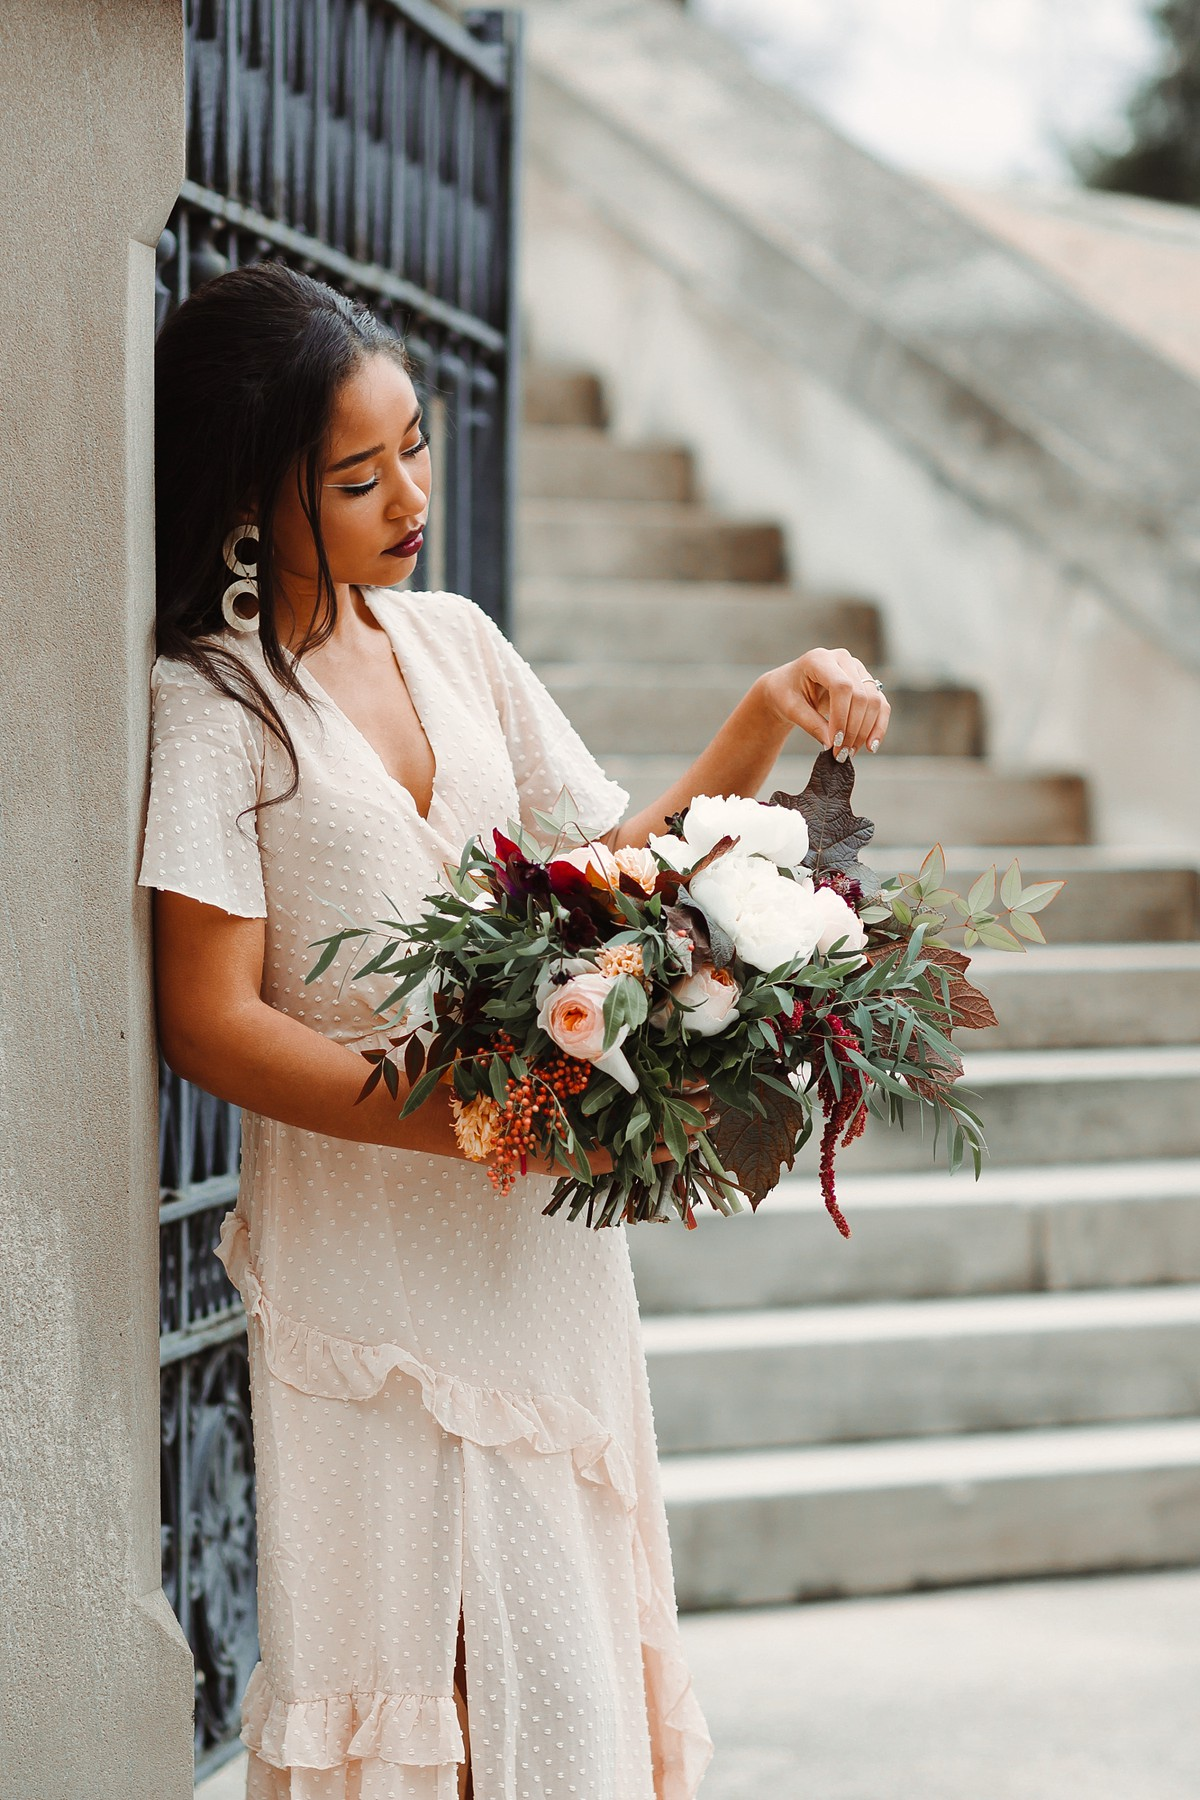 Winter Bridal Fashion For Courthouse Wedding Abby Weeden